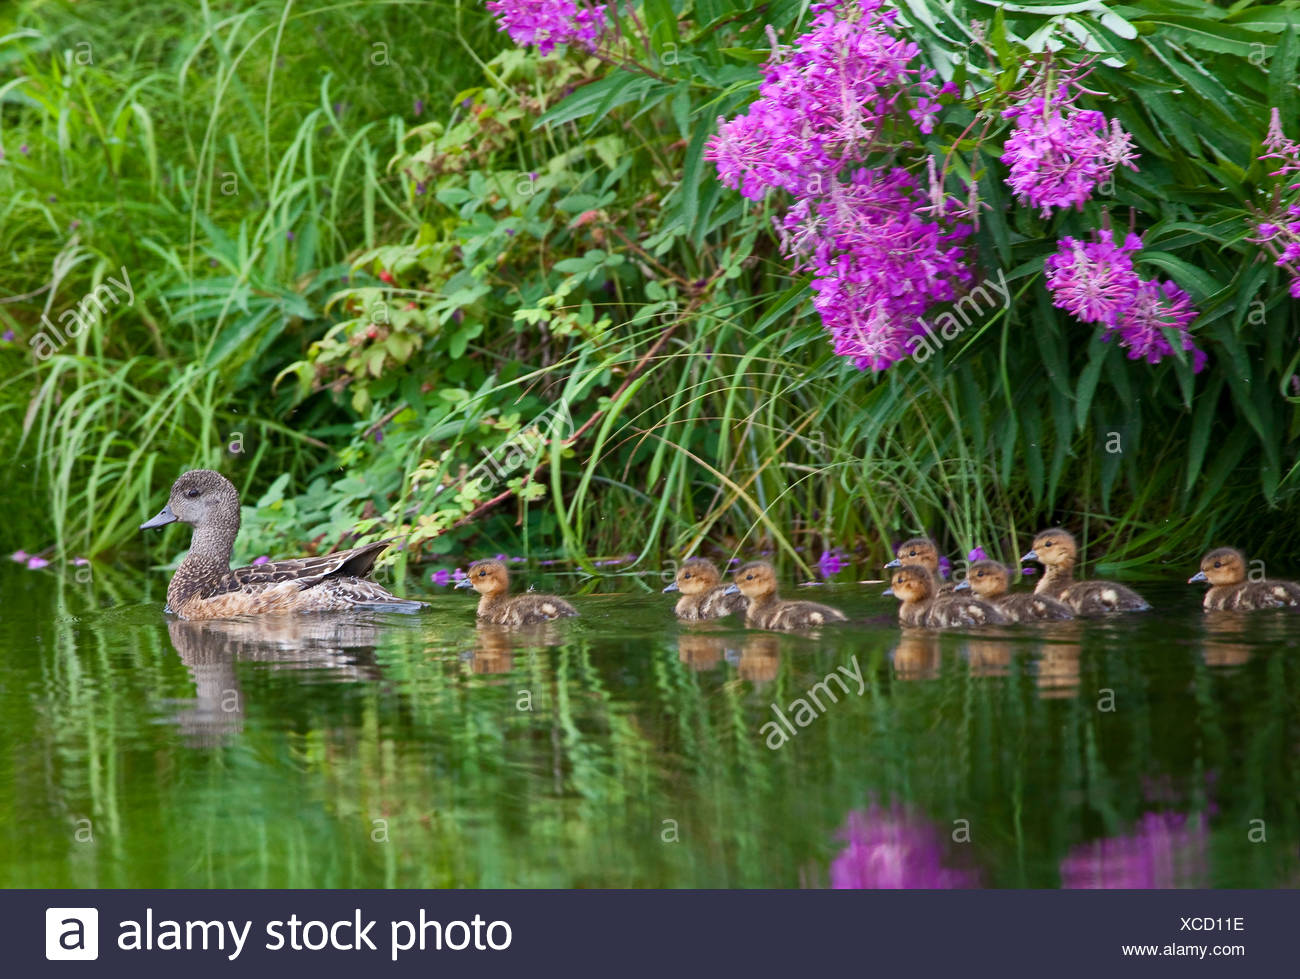 Alaska. American Wigeon ((Anas americana) brood swimming under fireweed wildflowers, southcentral alaska. - Stock Image